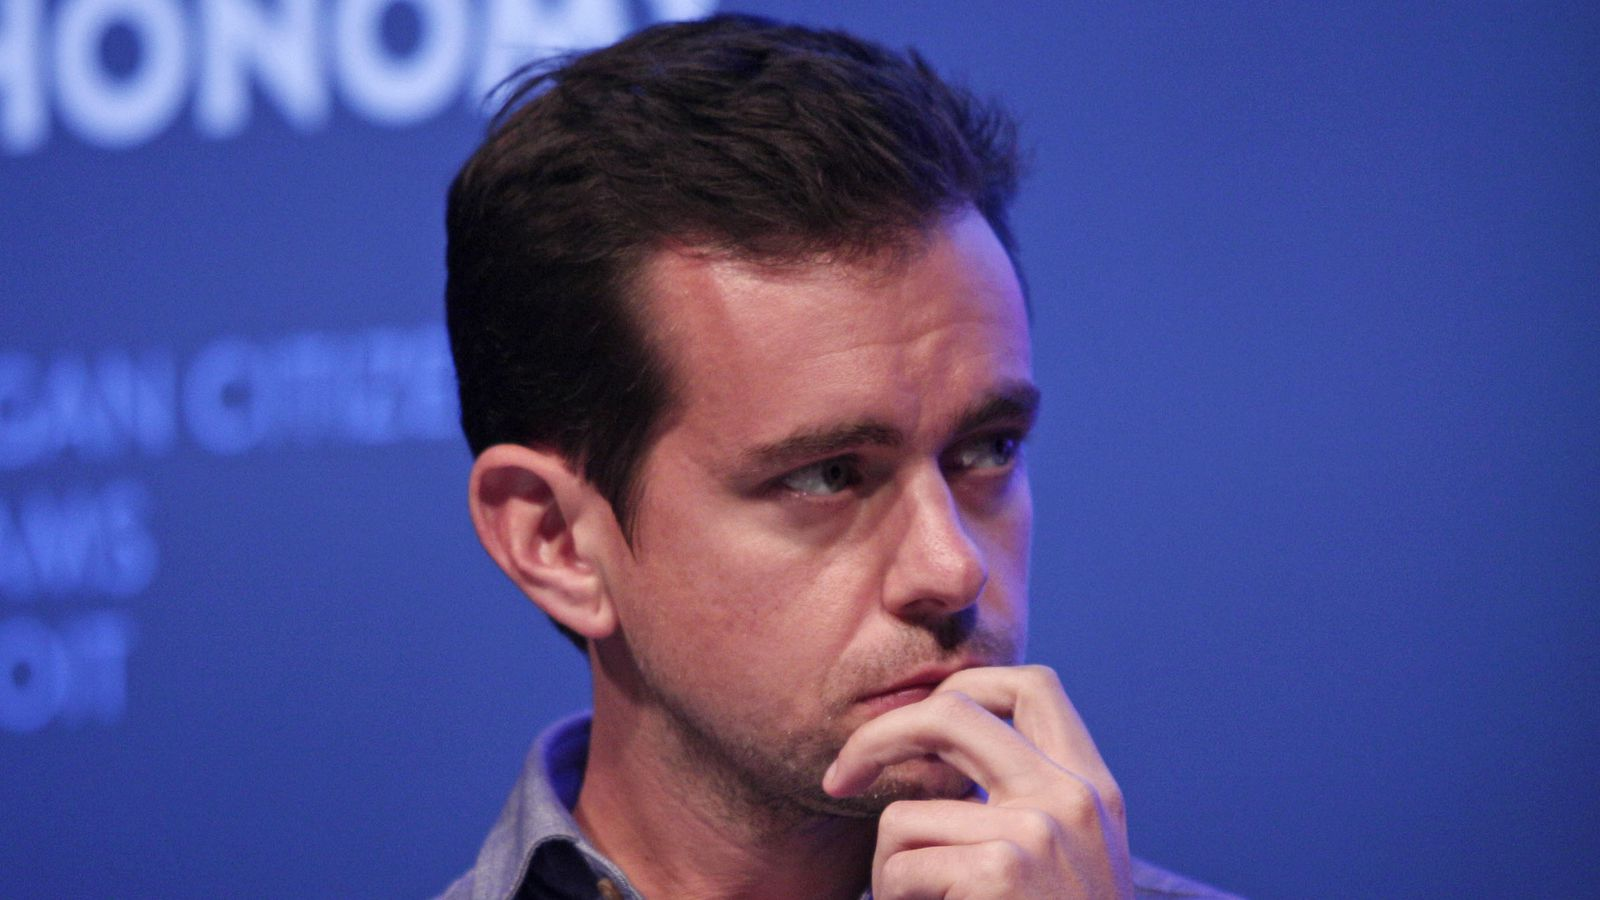 recode.net - Twitter added 9 million new users last quarter, the most since early 2015